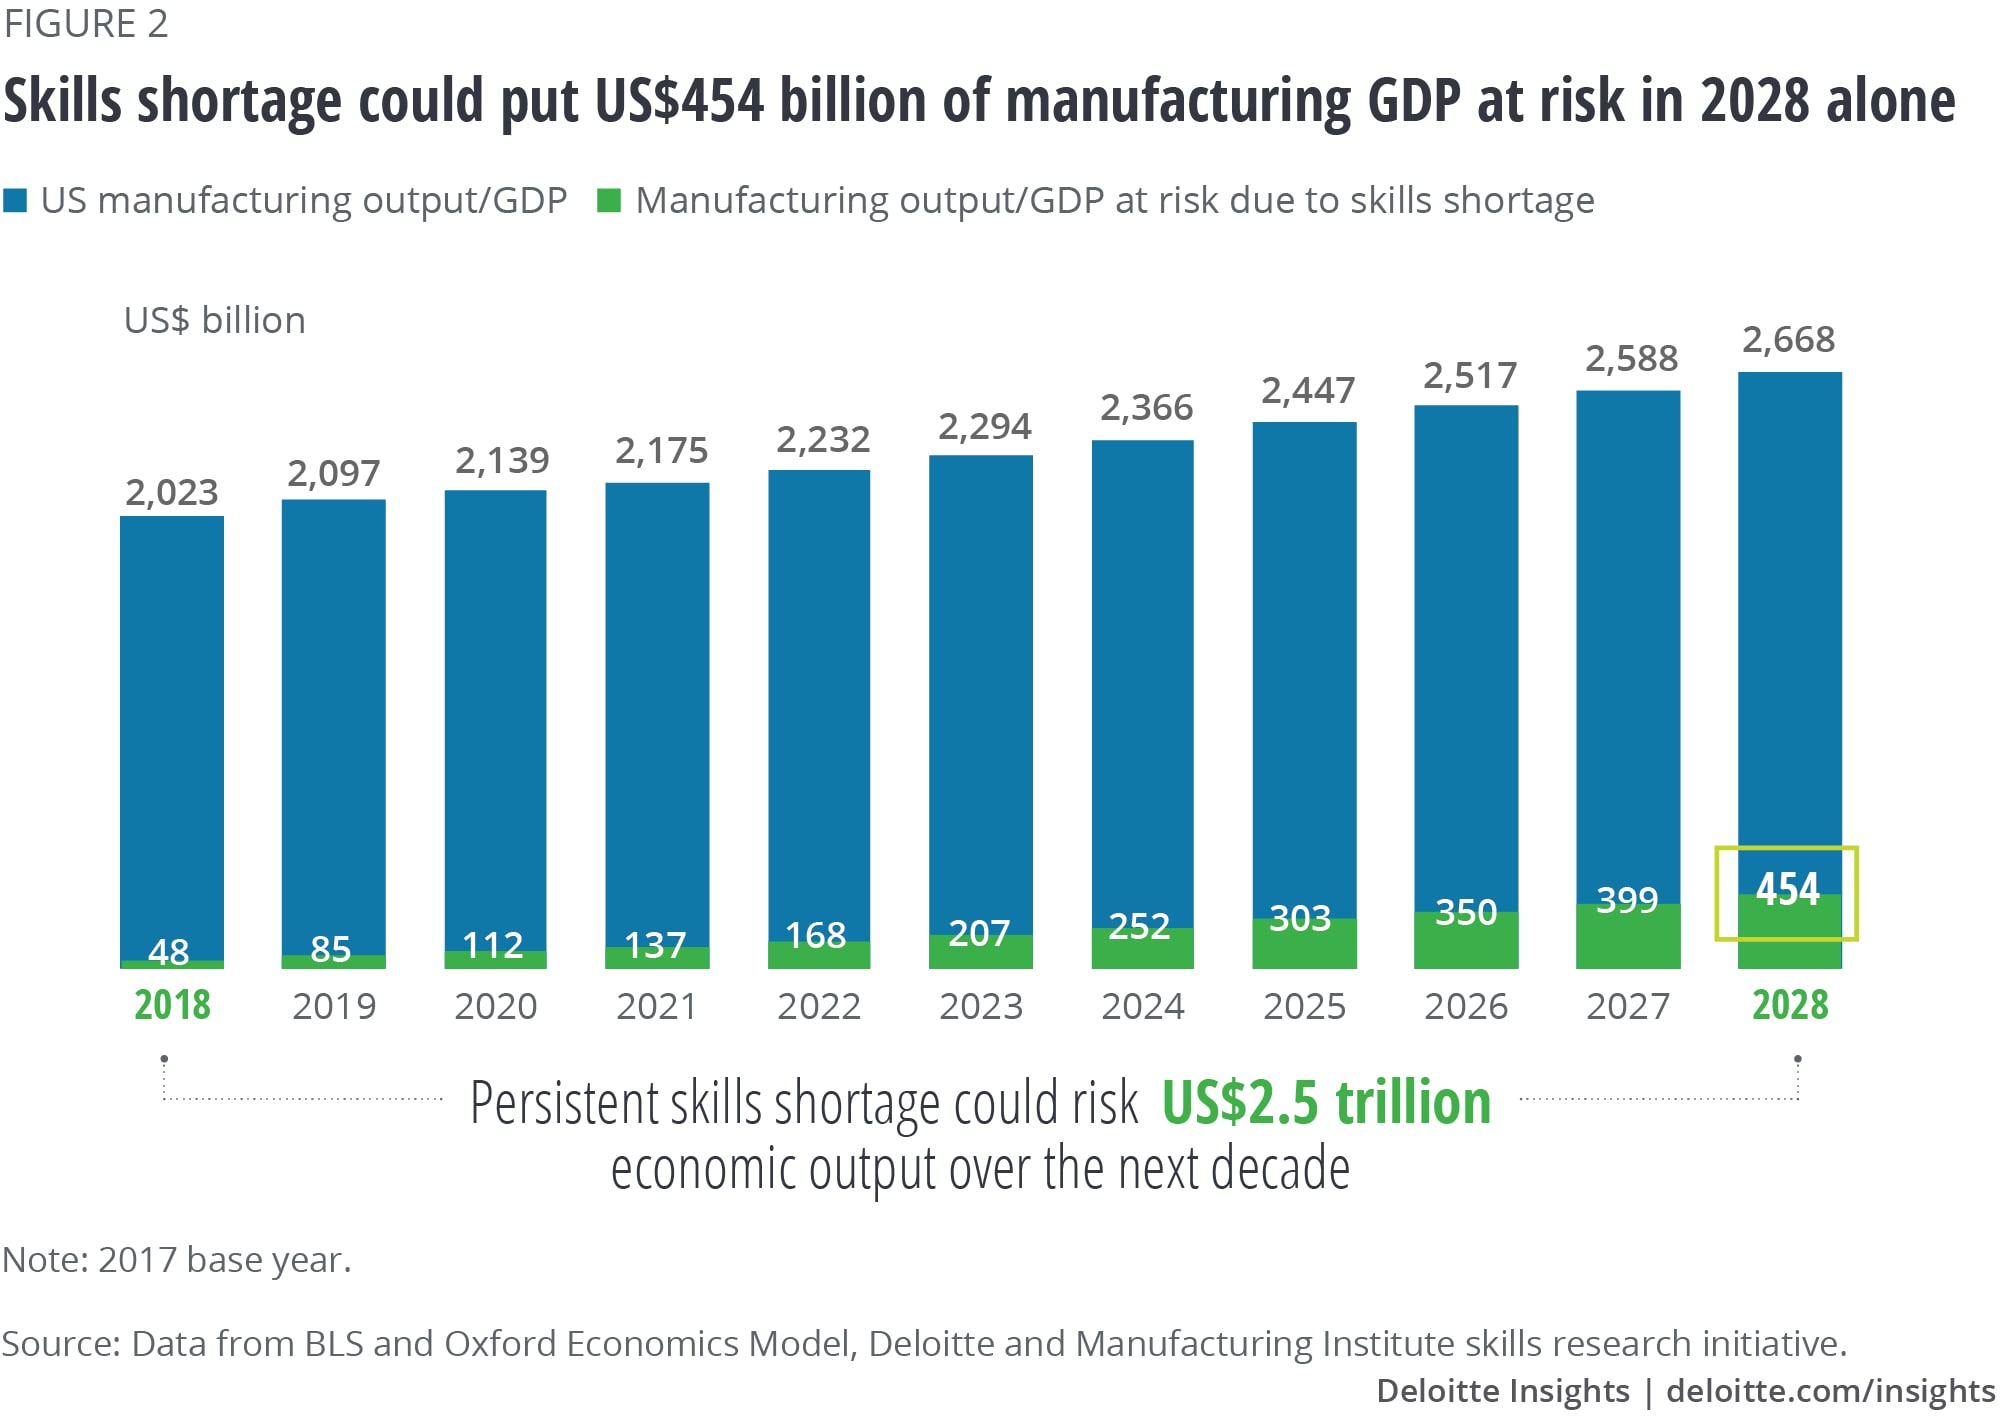 Skills shortage could put US$454 billion of manufacturing GDP at risk in 2028 alone